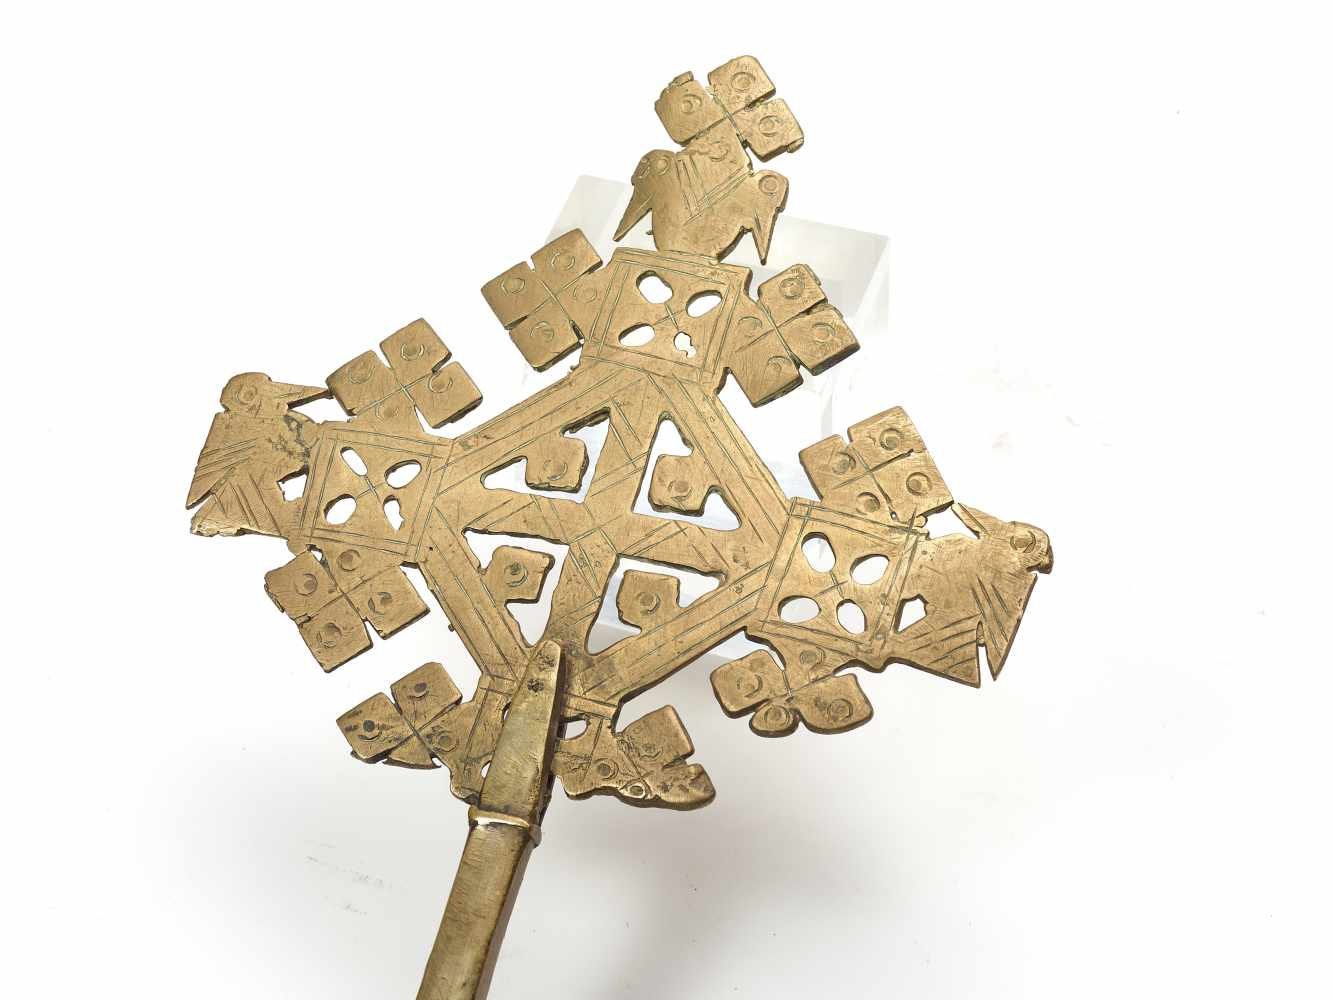 AN ETHIOPIAN PROCESSIONAL CROSS, CHASED AND OPENWORKED BRASS, 19TH CENTURYBrassEthiopia, late 19th - Image 2 of 4